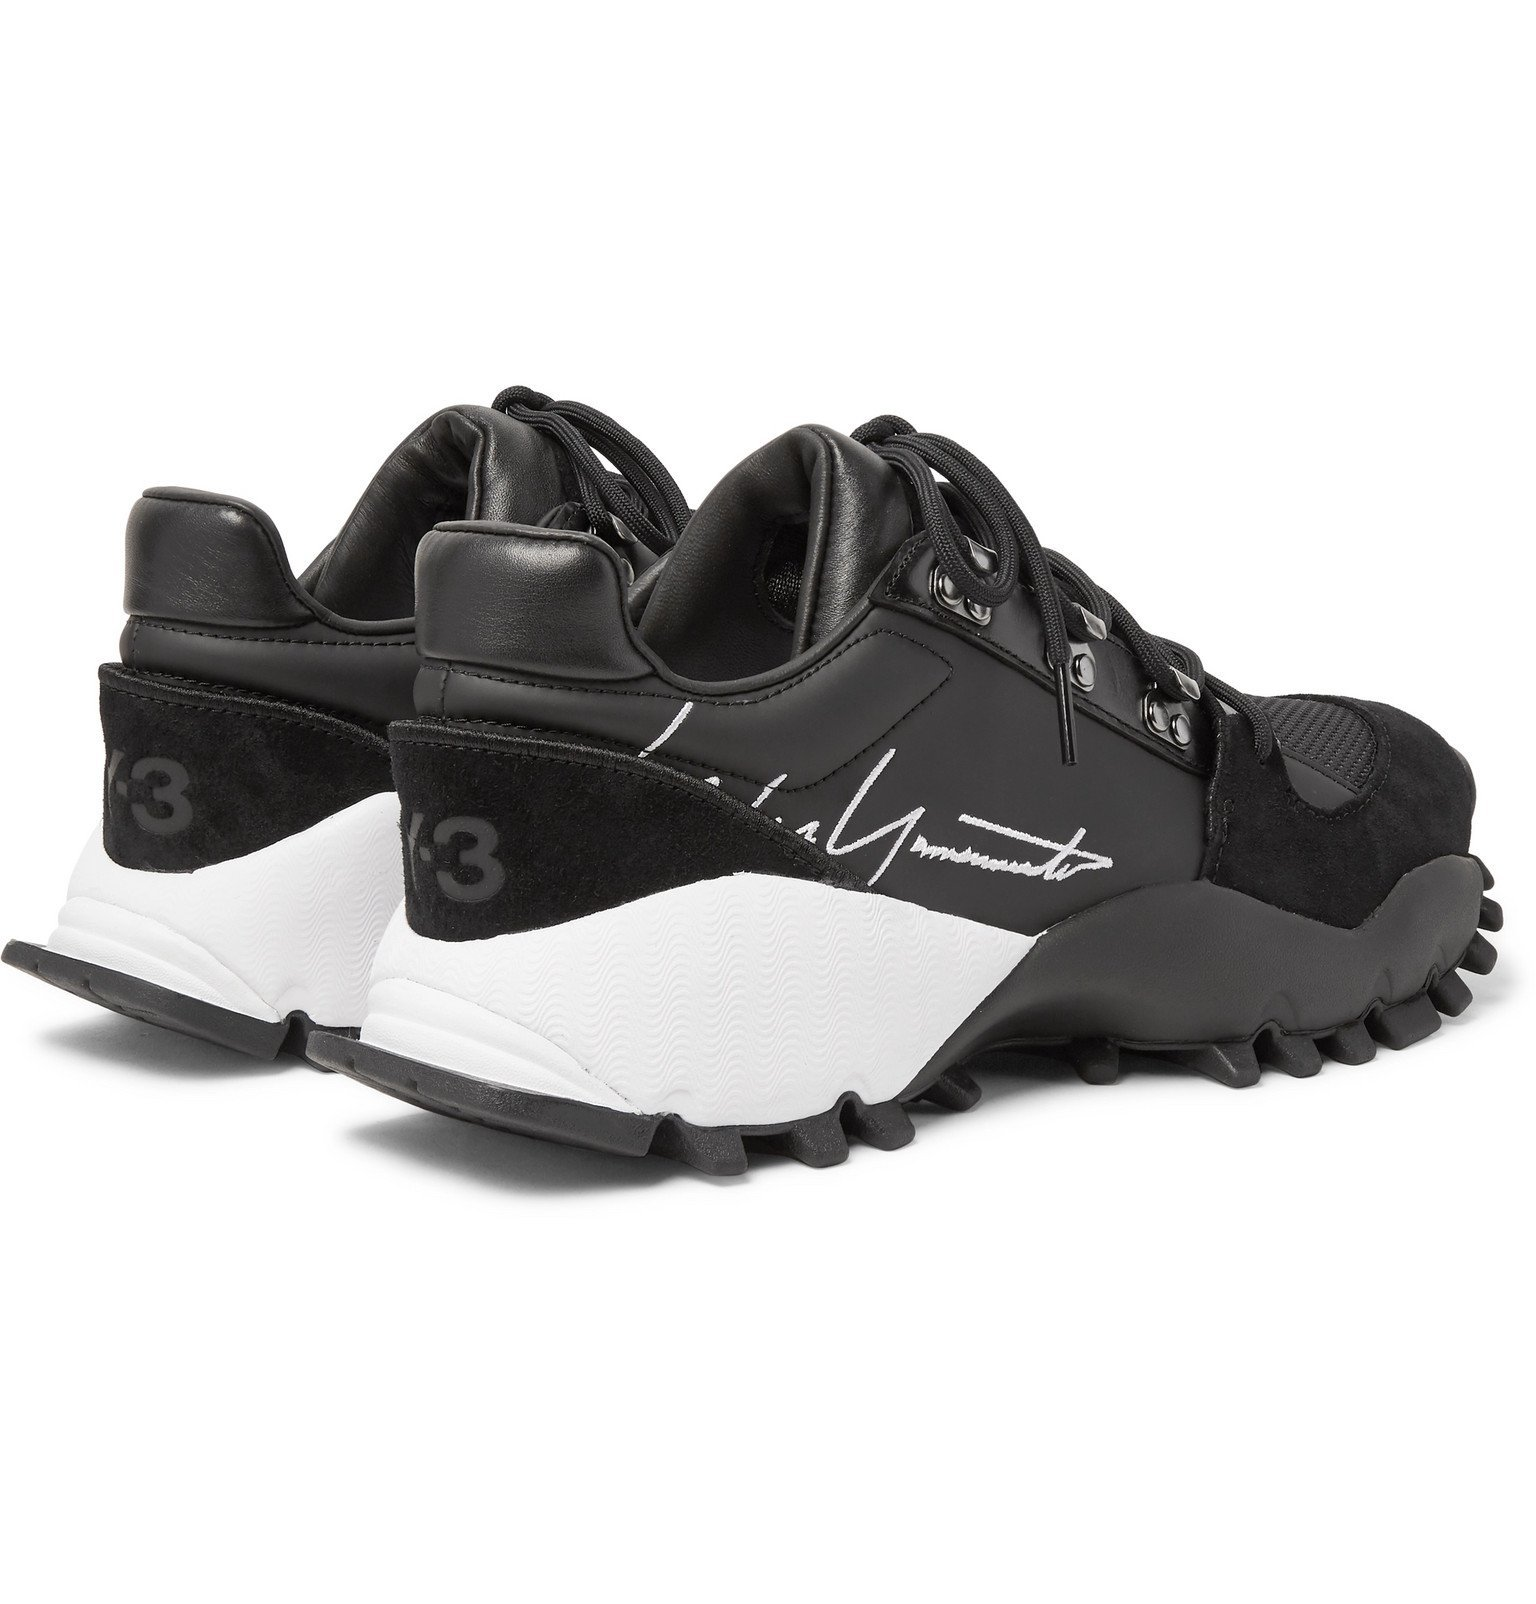 Y-3 - Kyoi Trail Leather, Suede and Mesh Sneakers - Black